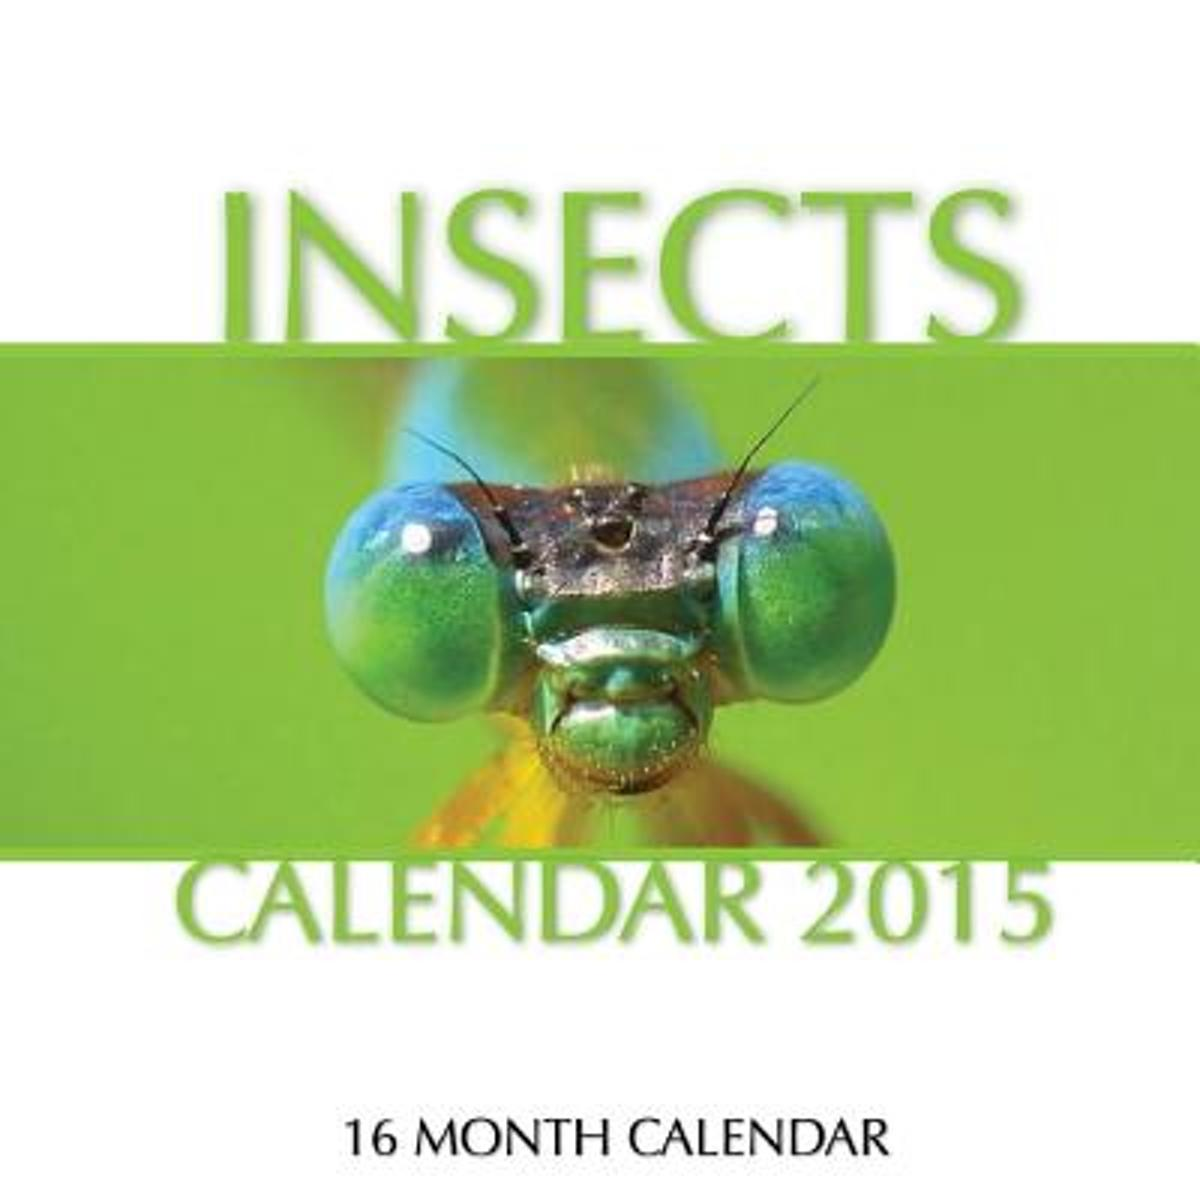 Insects Calendar 2015